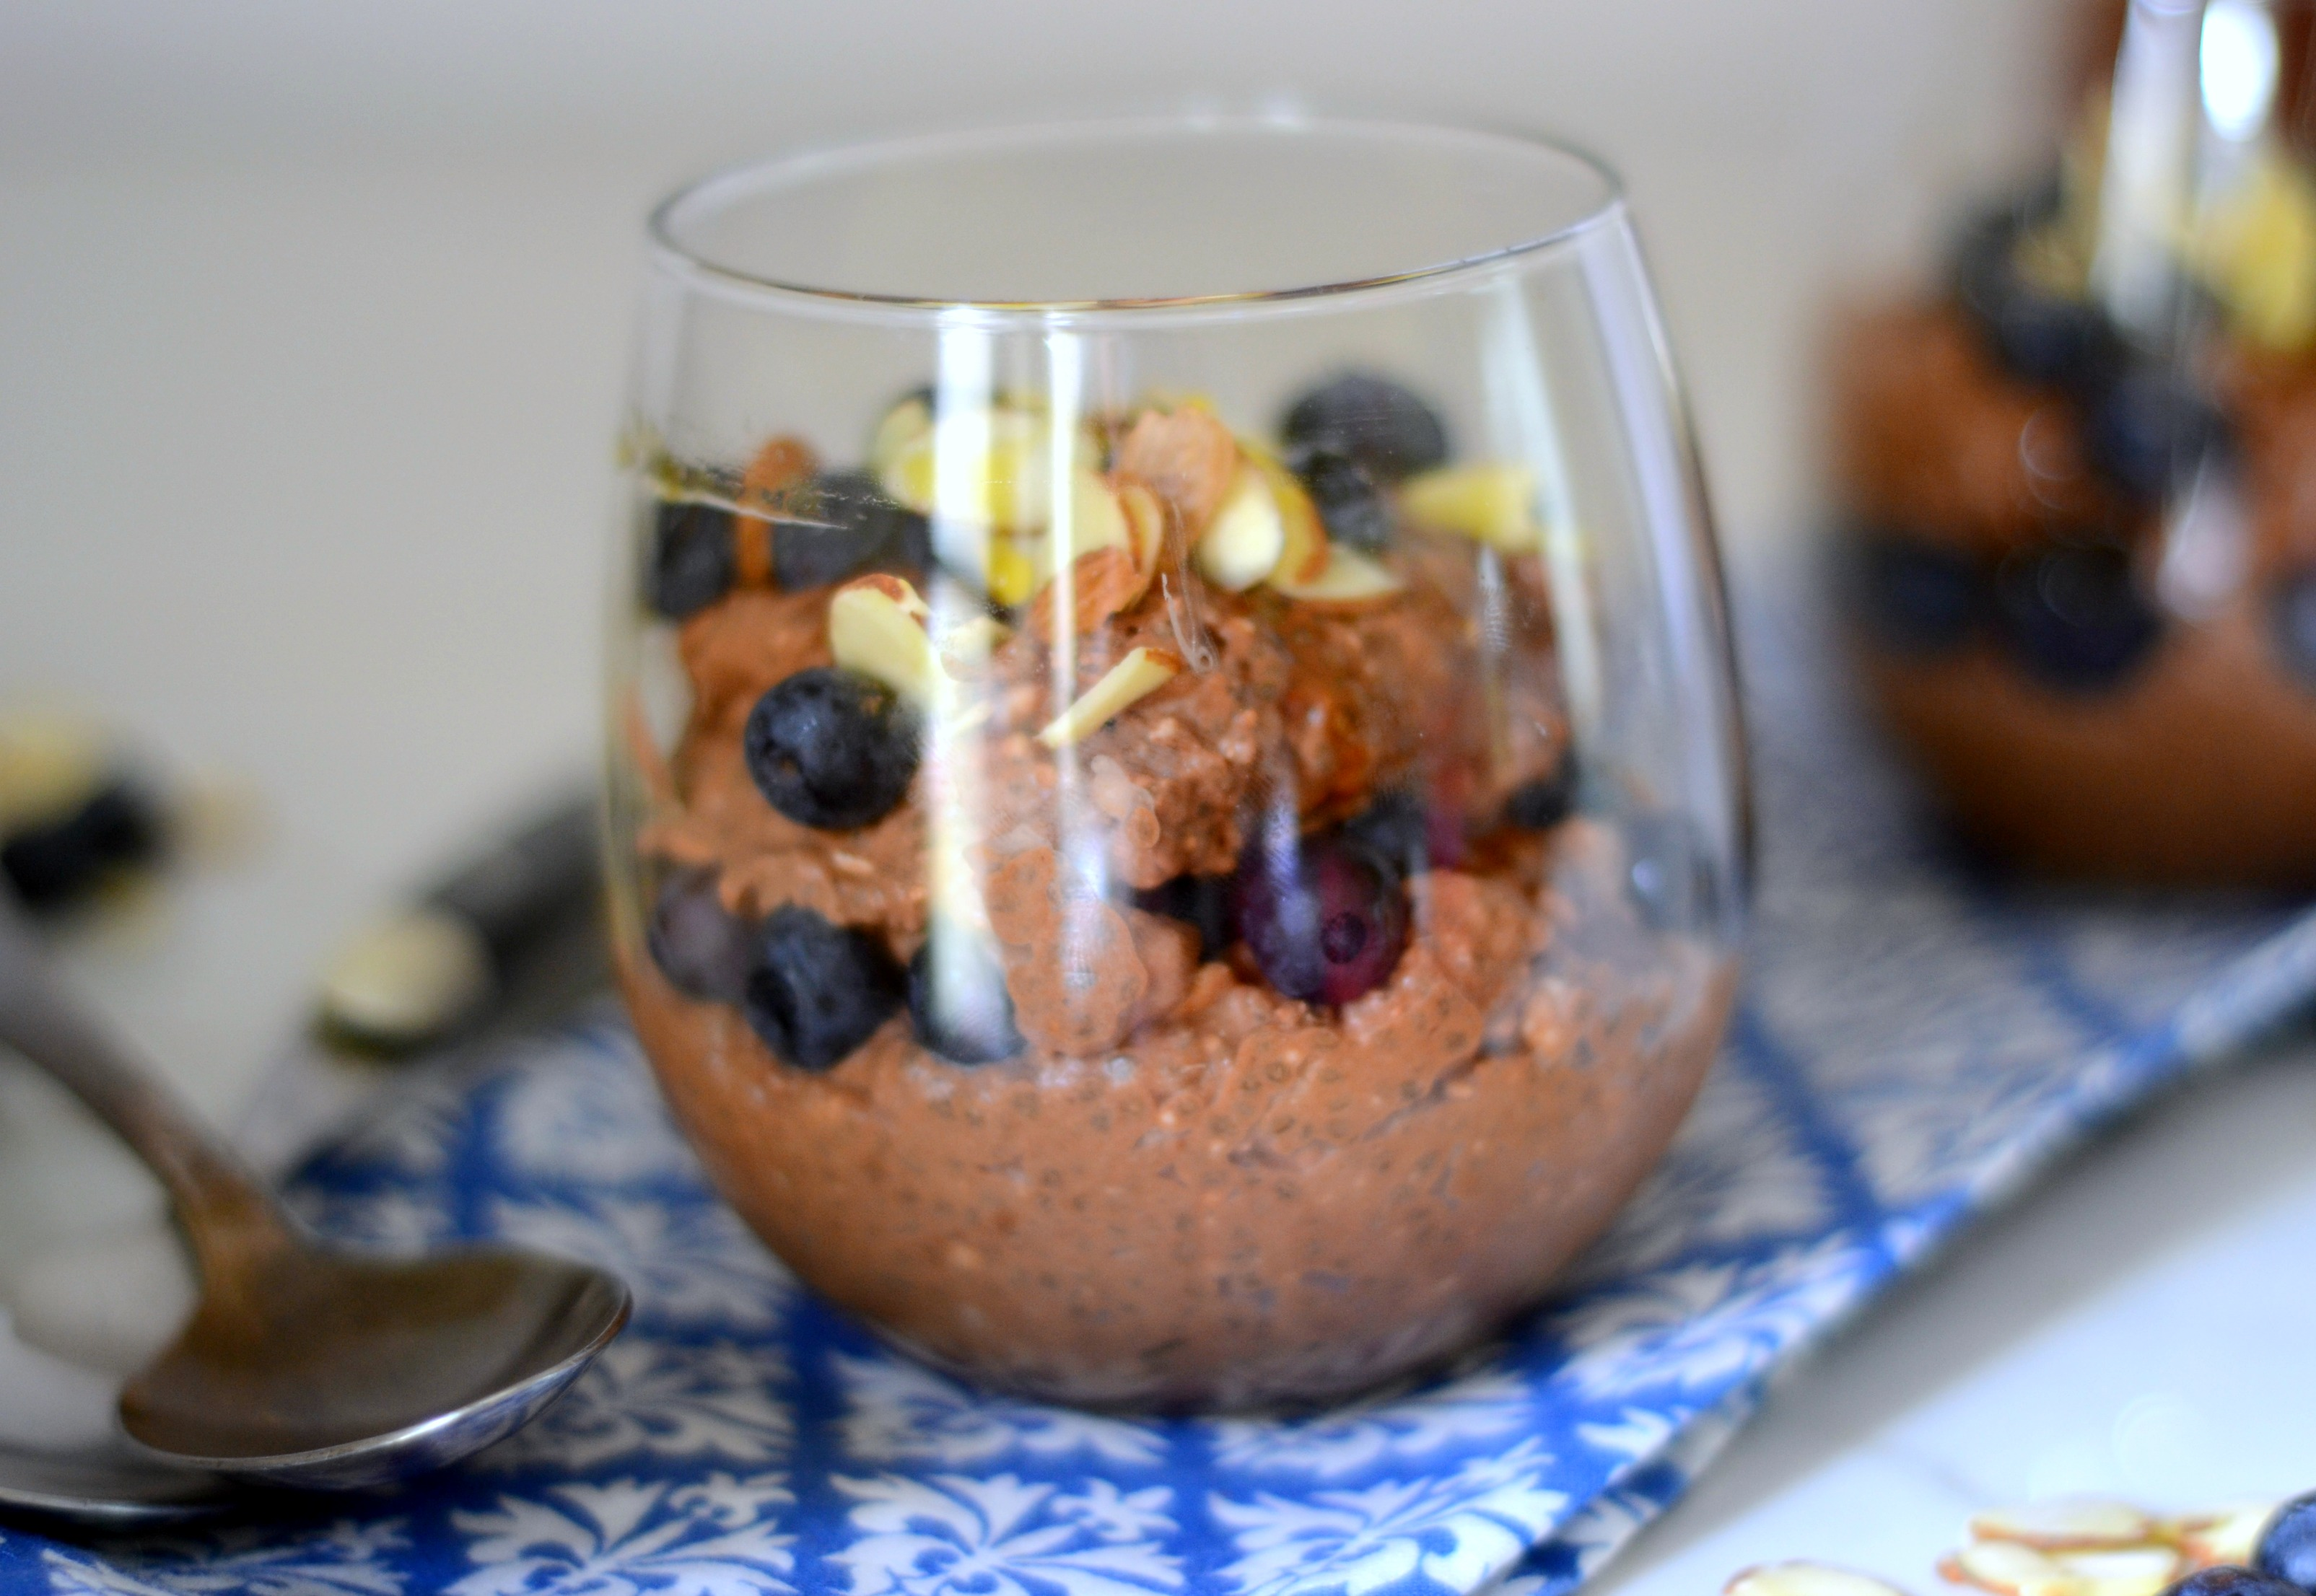 glass dish filled with chocolate chia pudding topped with slivered almonds and blueberries